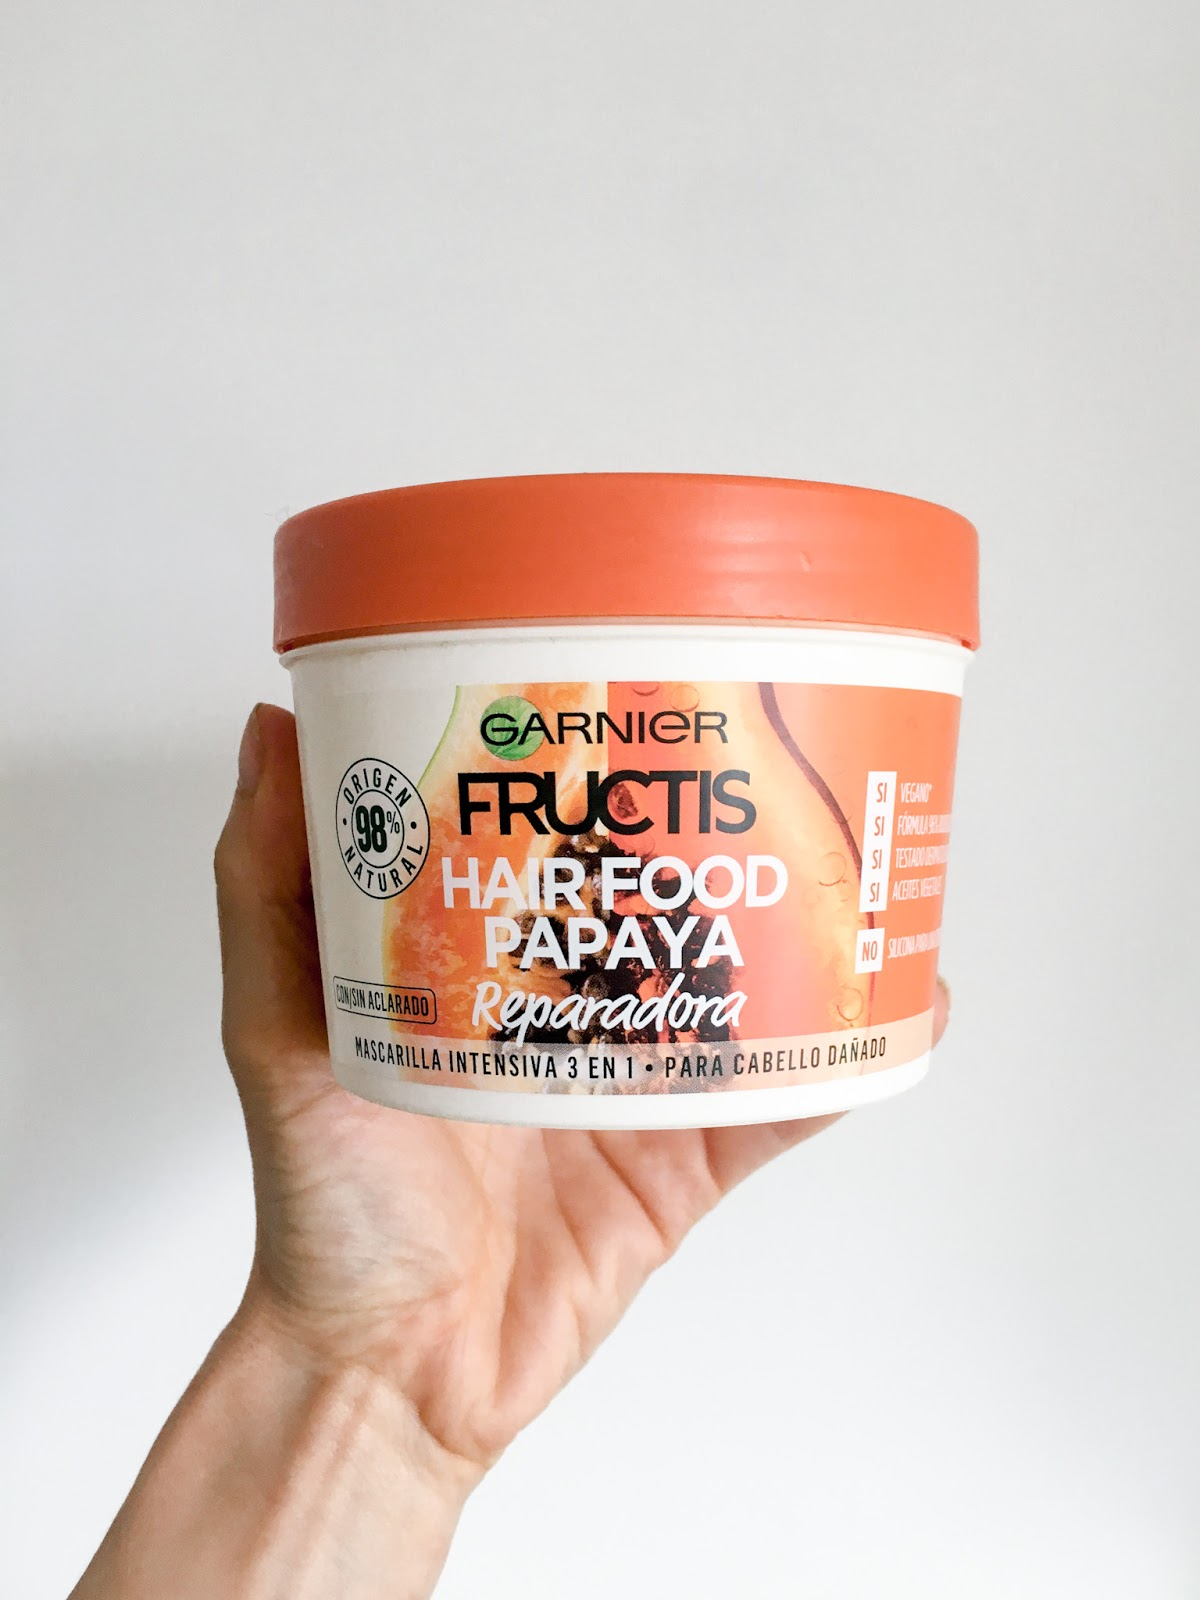 mascarilla fructis hair food papaya garner opinion